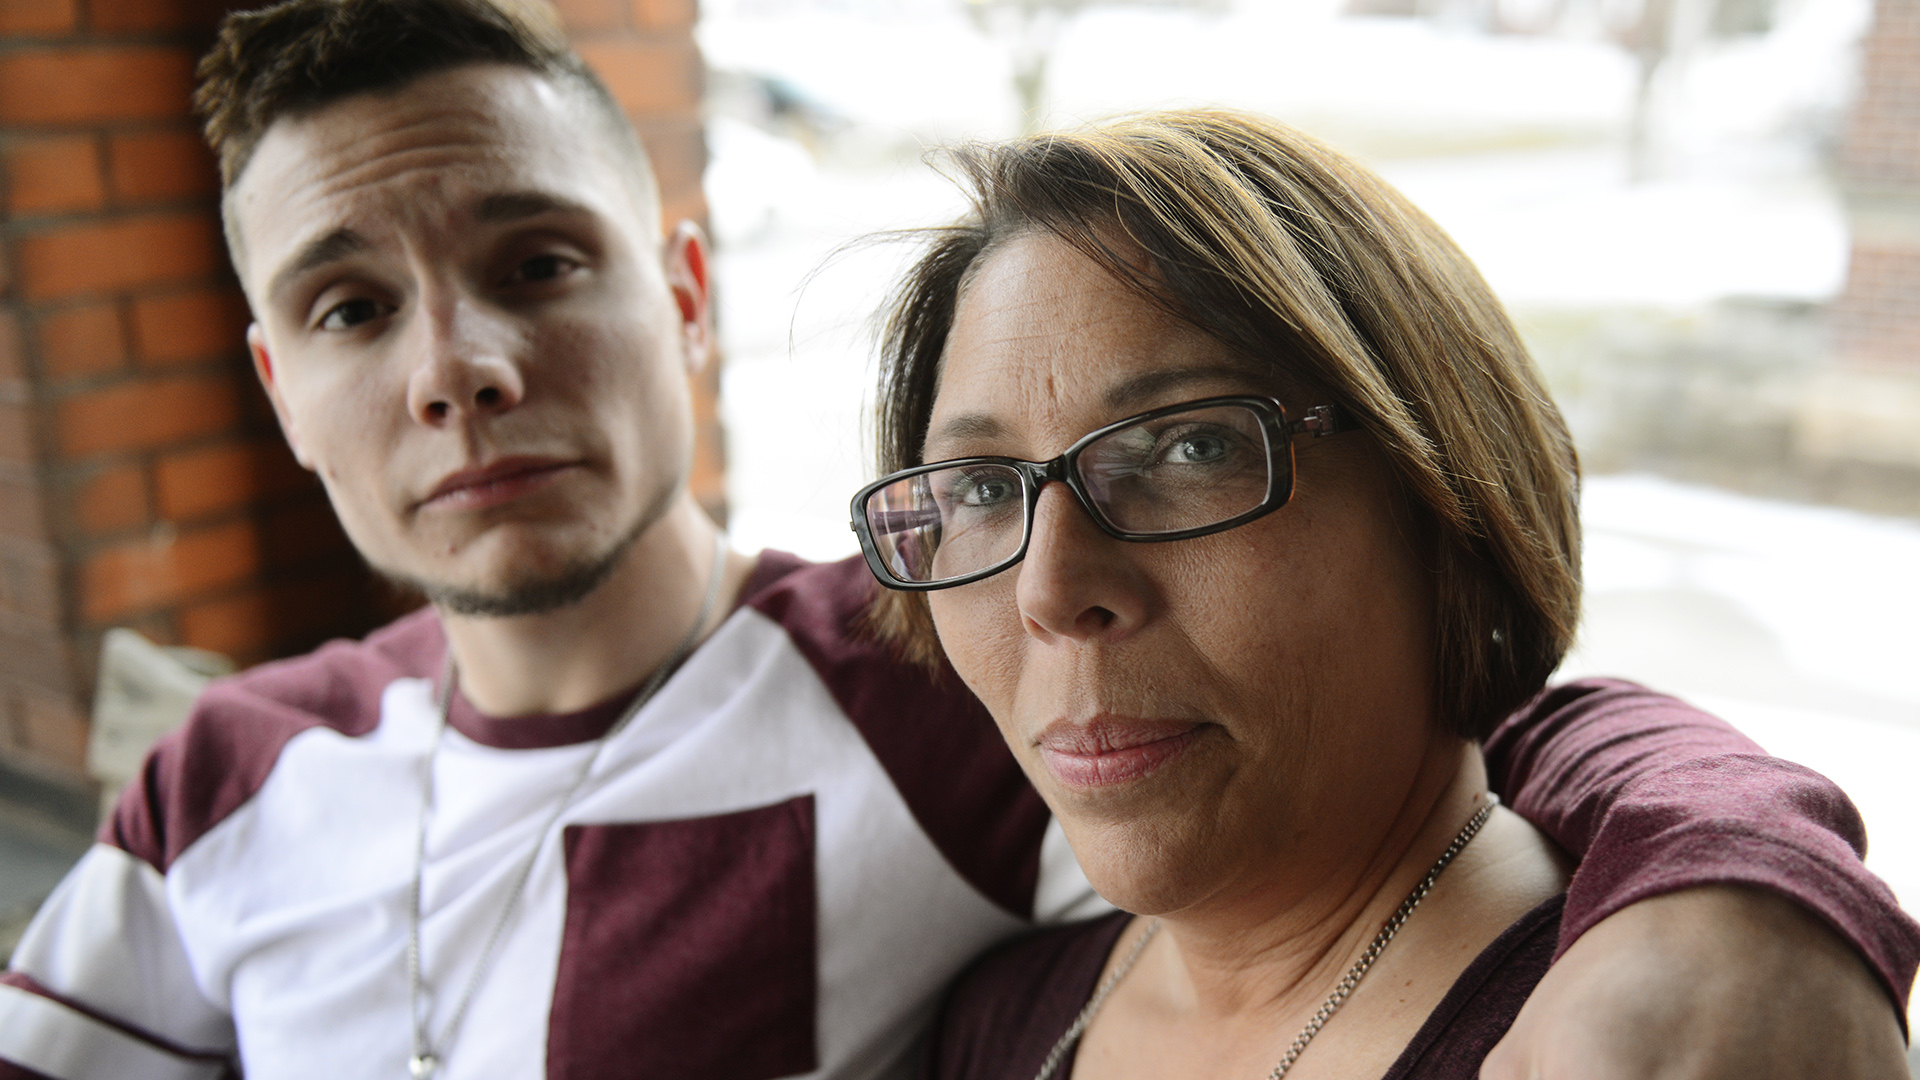 Mother's fight: Saving son from heroin